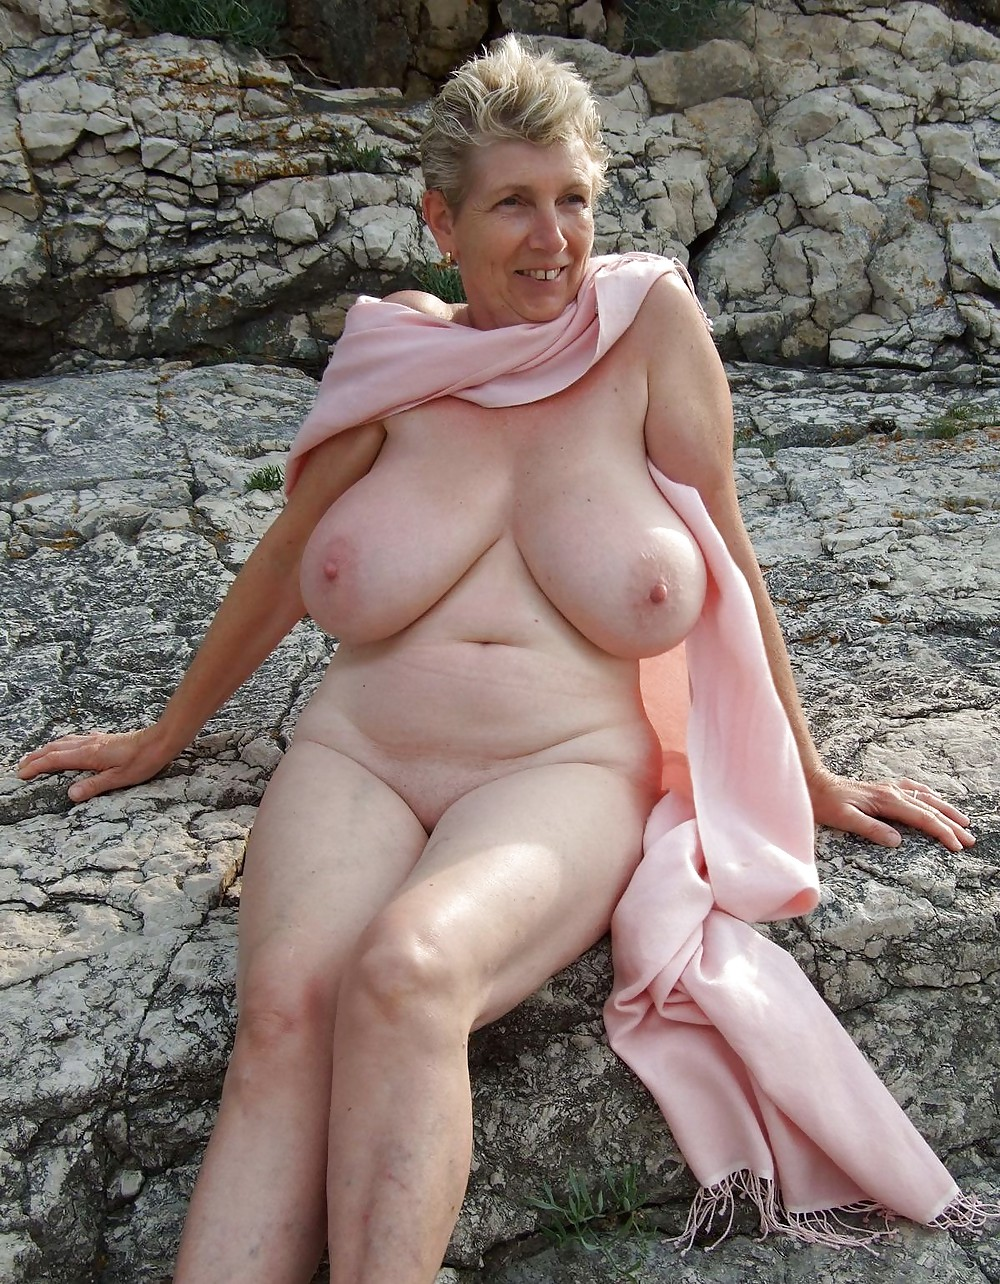 Big tit grannies naked, old grunny piss v kontakte